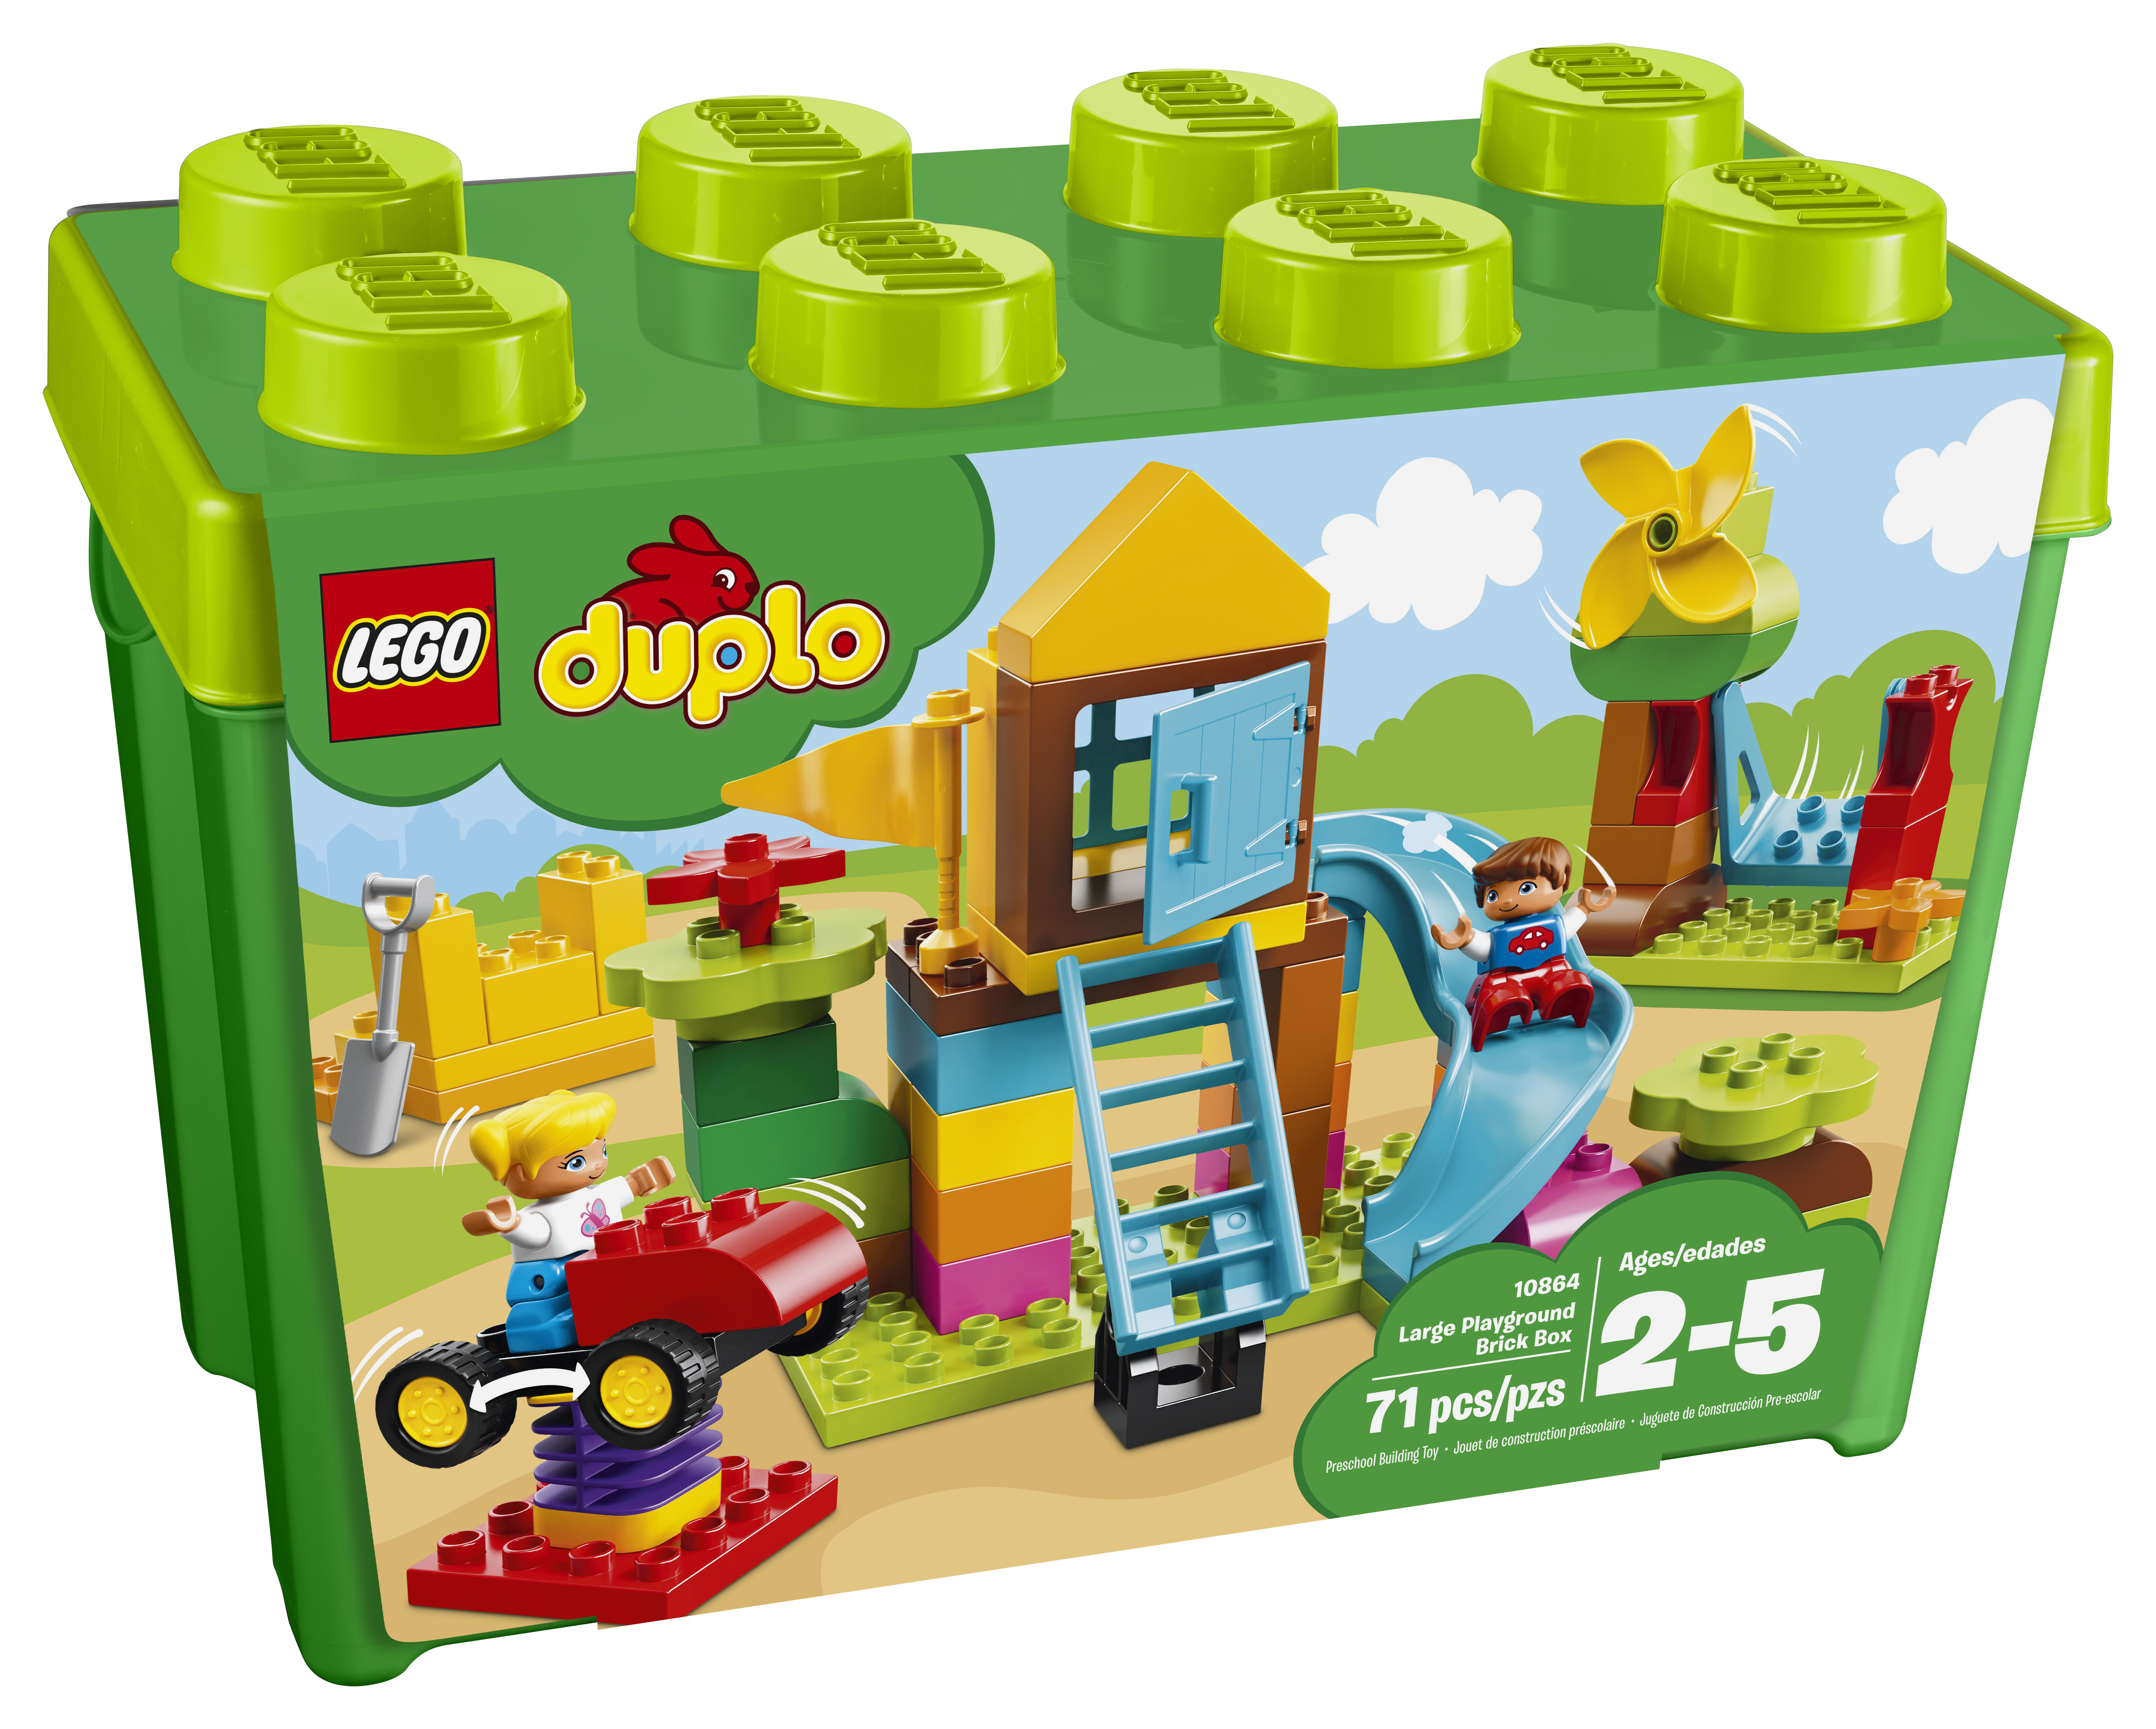 LEGO DUPLO Large Playground 71 Piece Building Block Set with 2 Toy Figurines